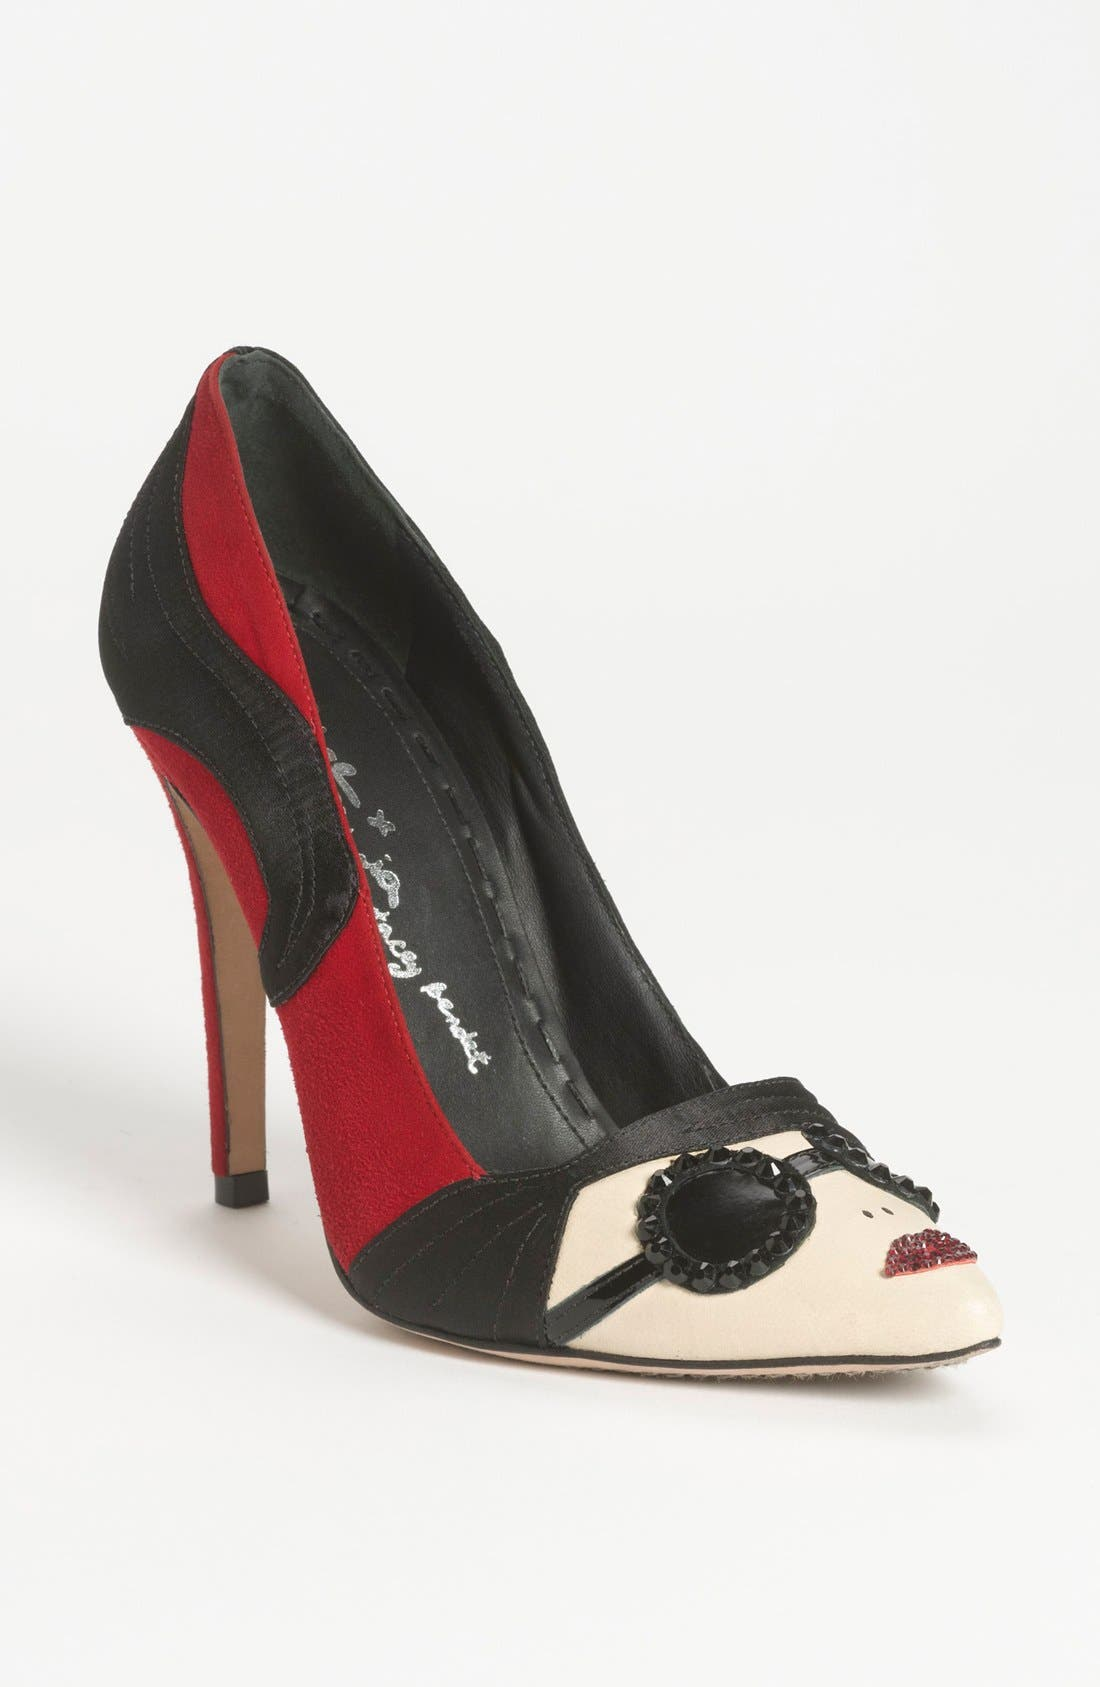 Alternate Image 1 Selected - Alice + Olivia 'Stacey' Pump